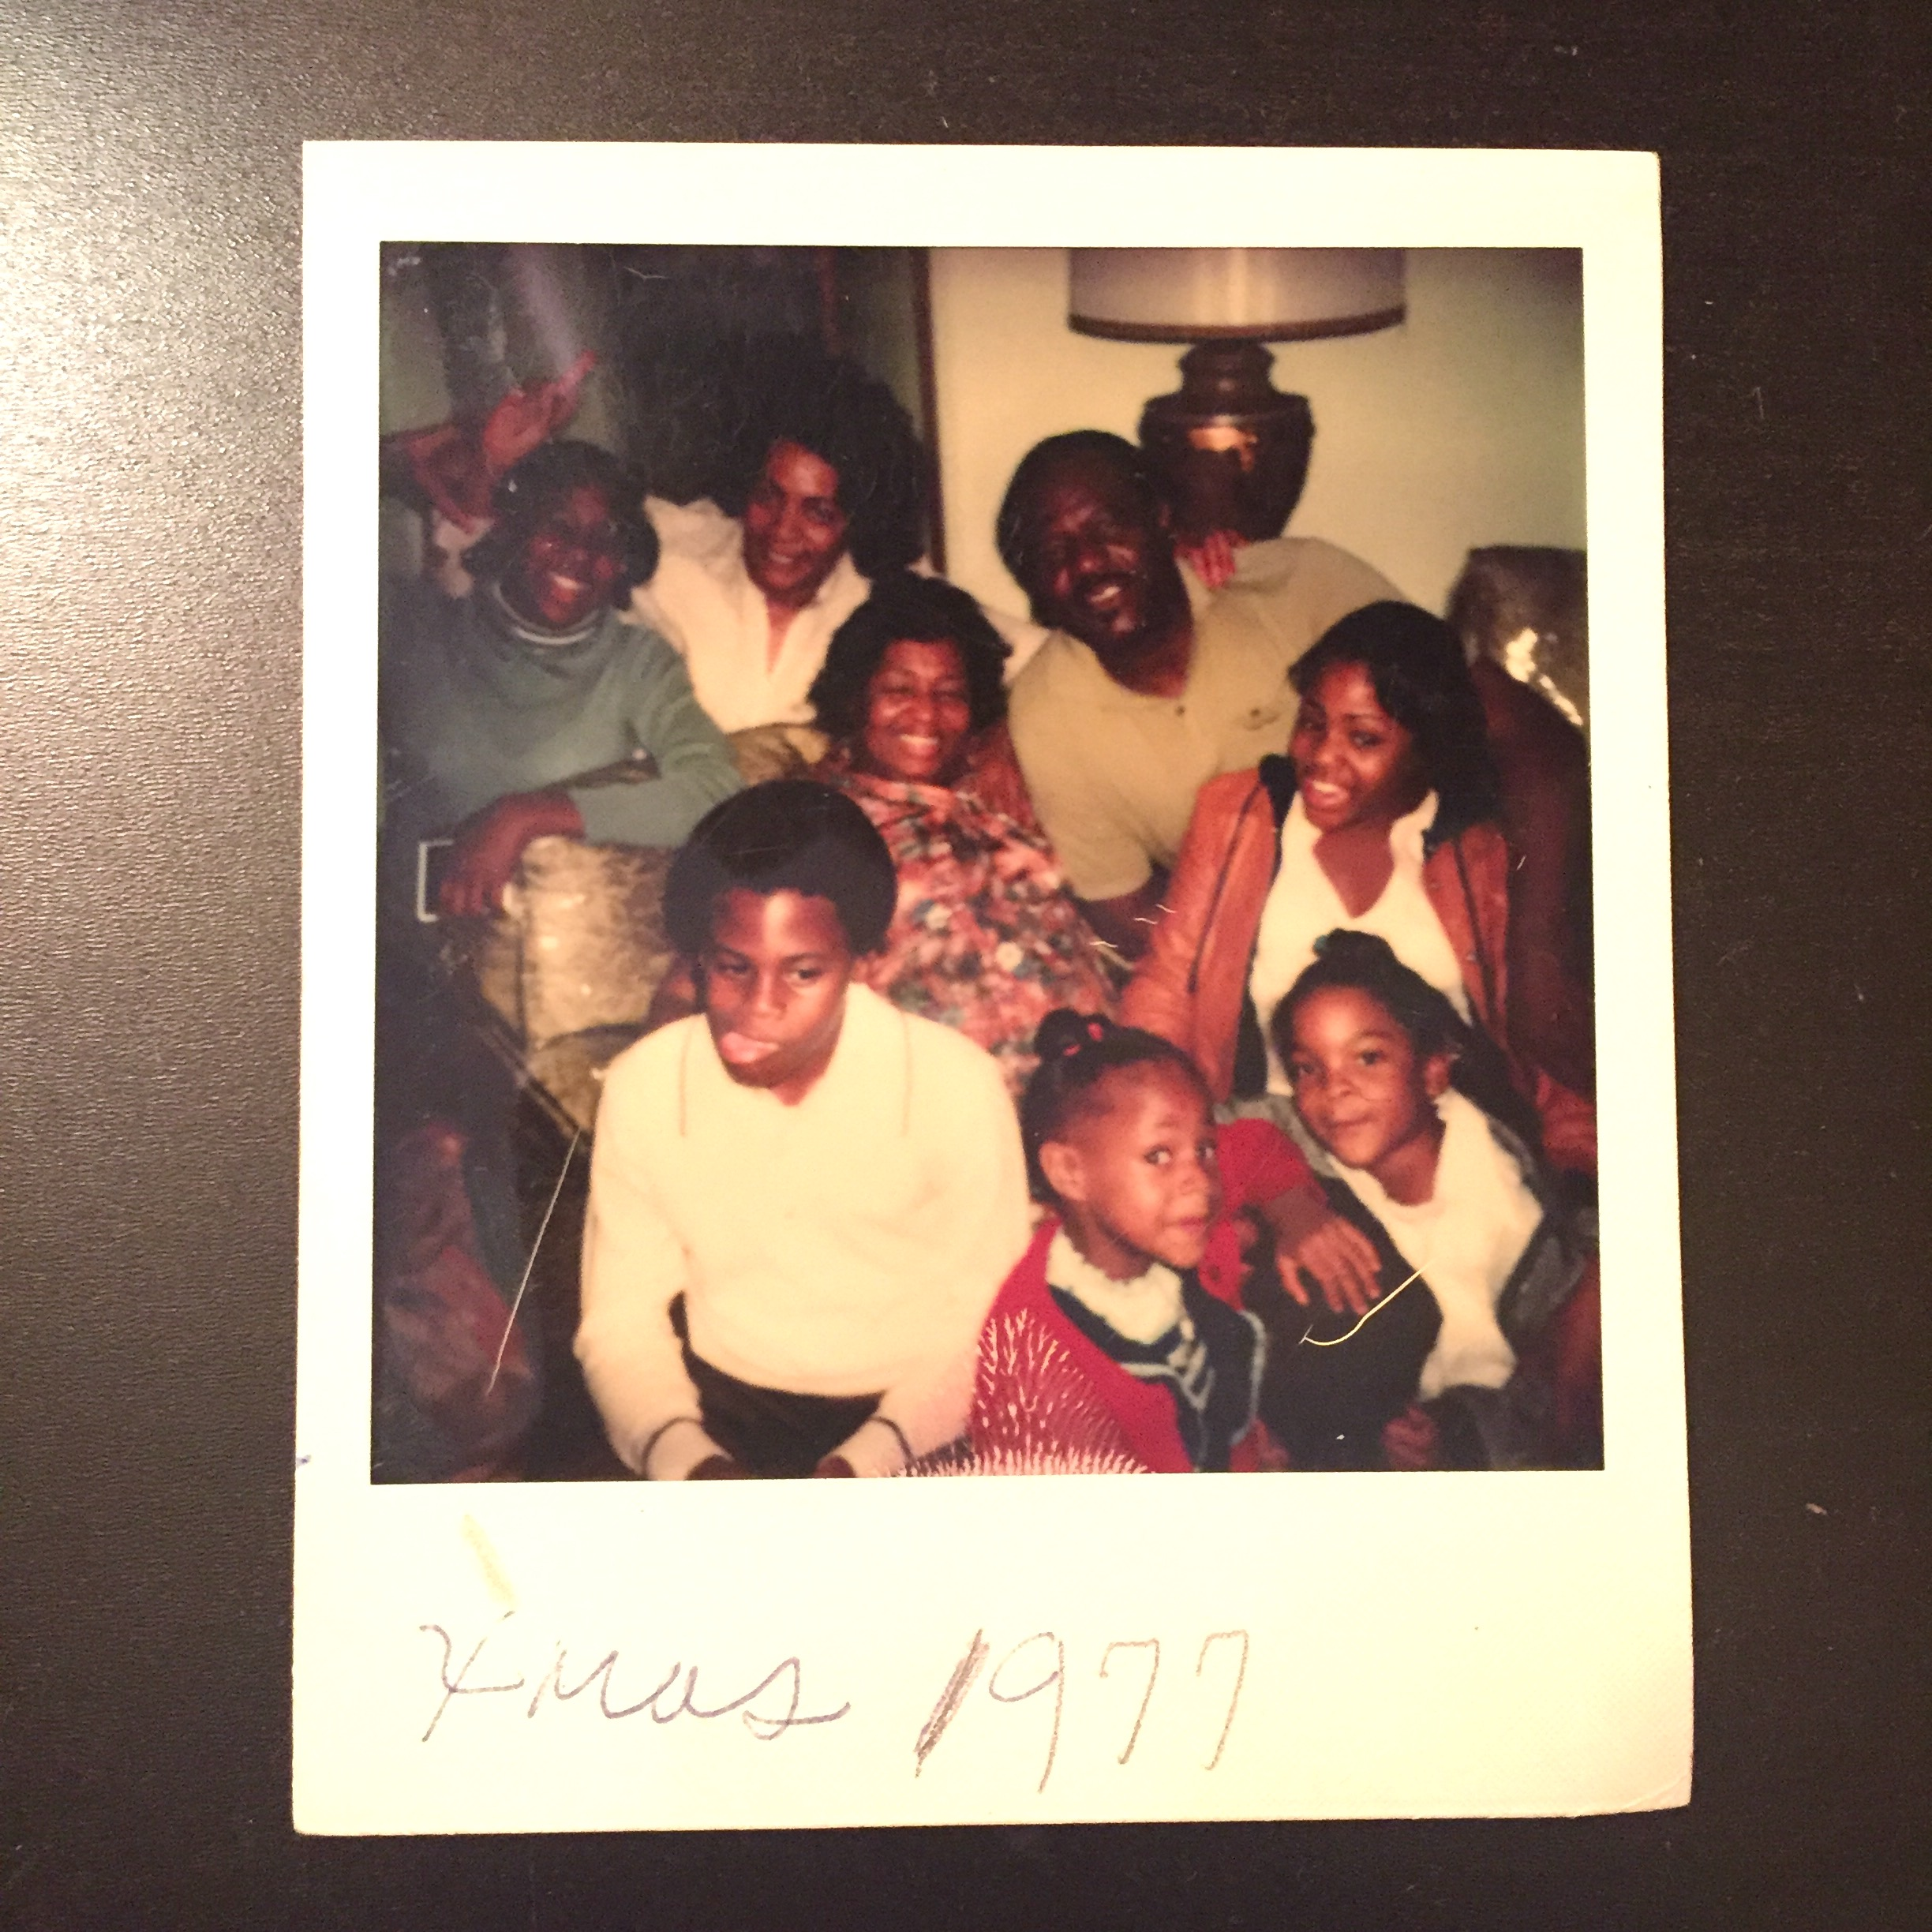 Me (bottom right), my grandparents in the middle along with an aunt and my cousins. Fun times!